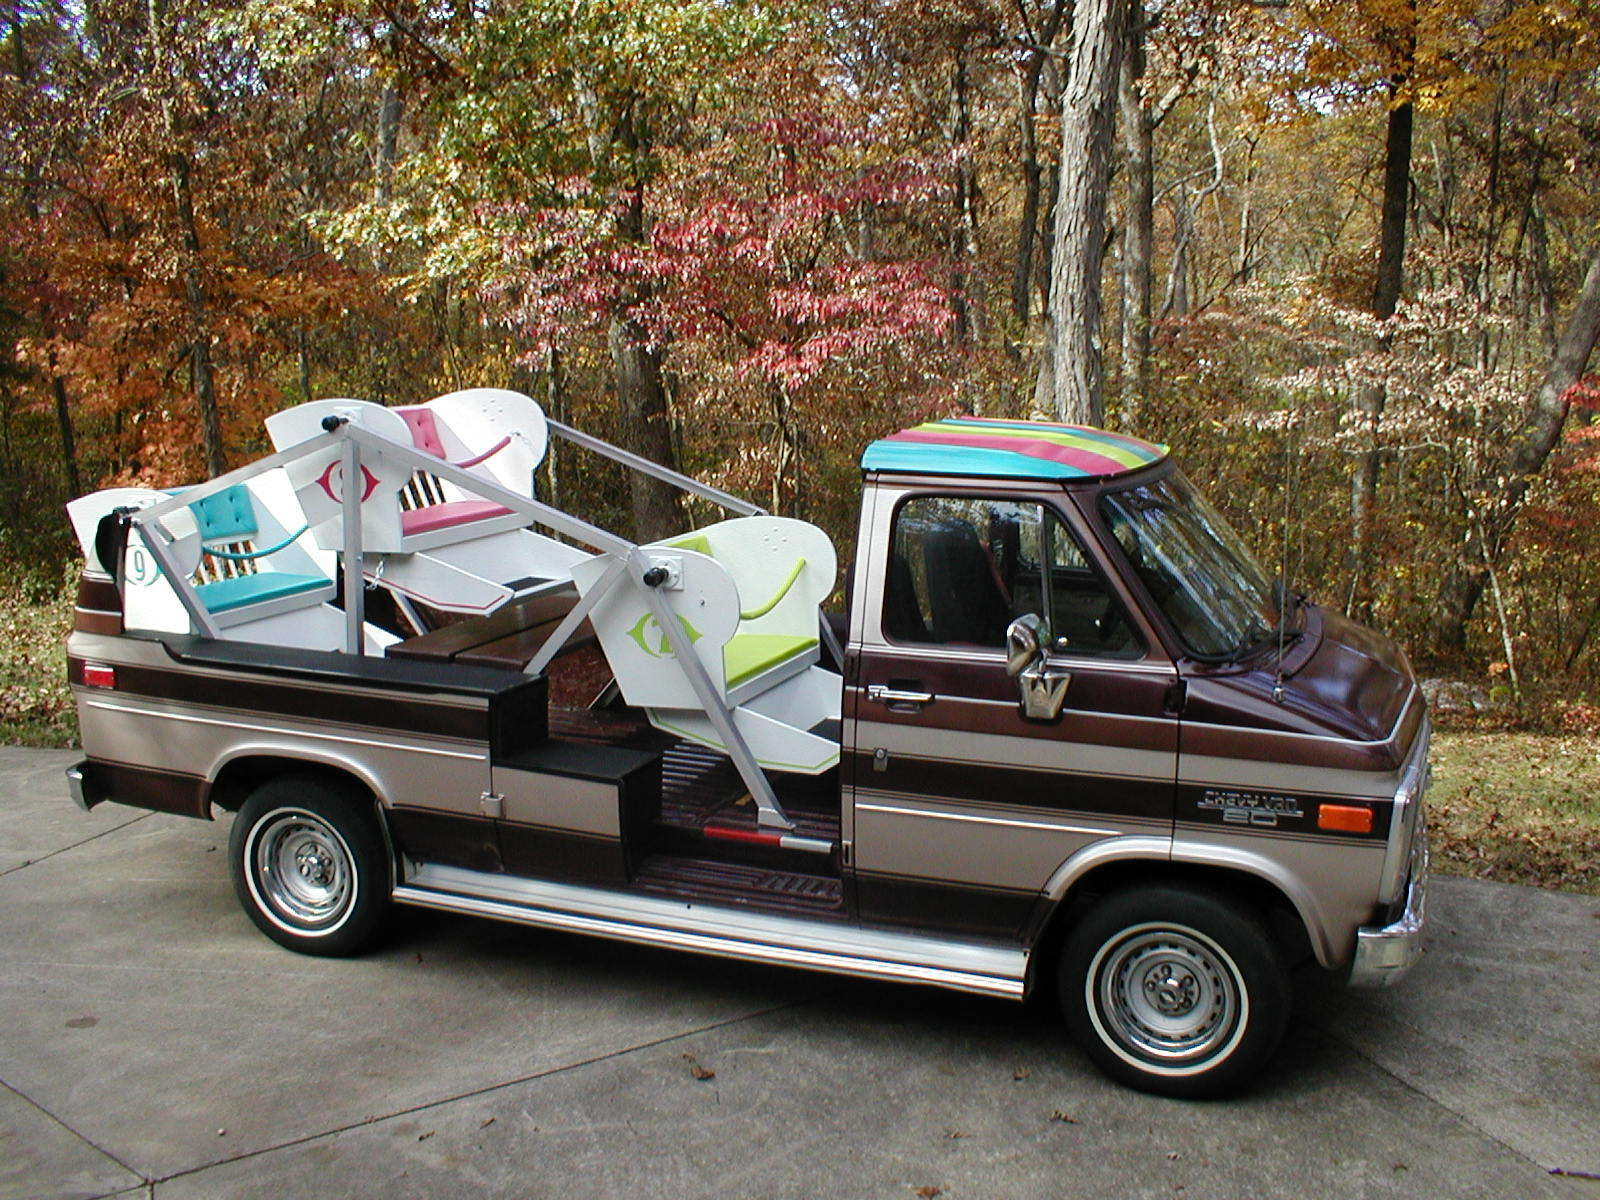 The Seller Lists This Thing As A 1950s 1960s Carnival Like Ferris Wheel Chevrolet And If Thats What Rides Were In 50s 60s